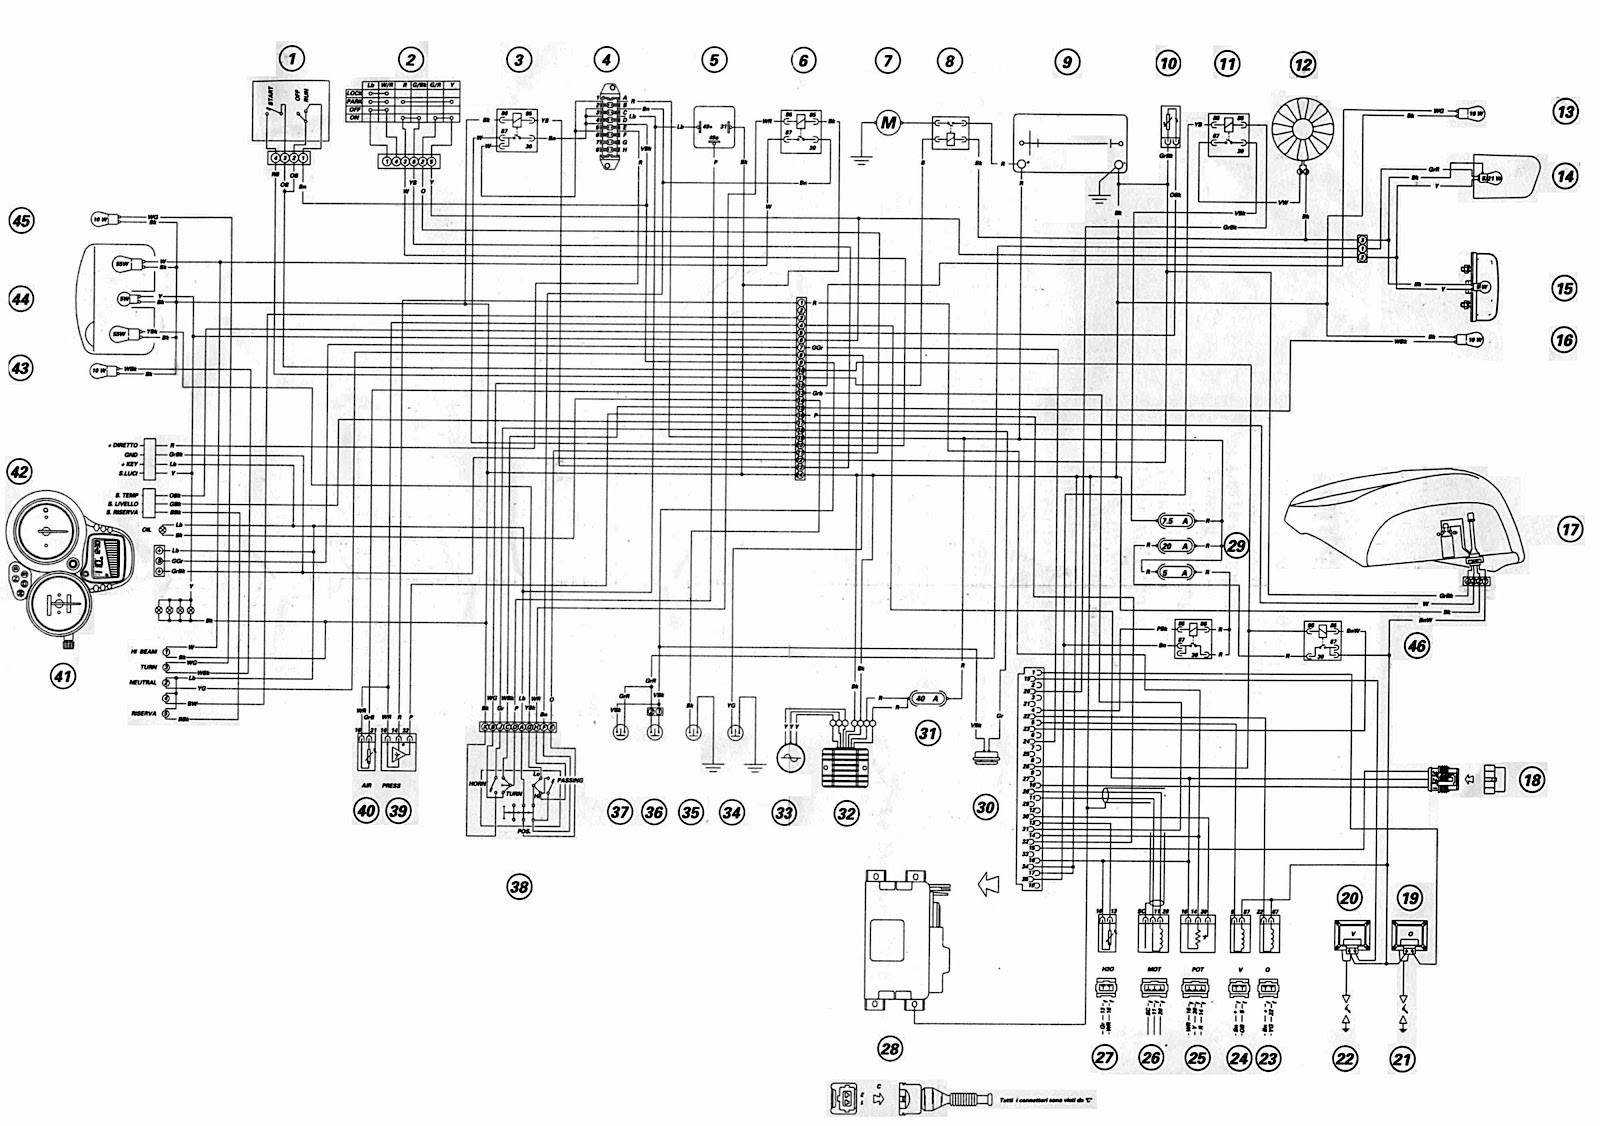 2004 gsxr 600 headlight wiring diagram